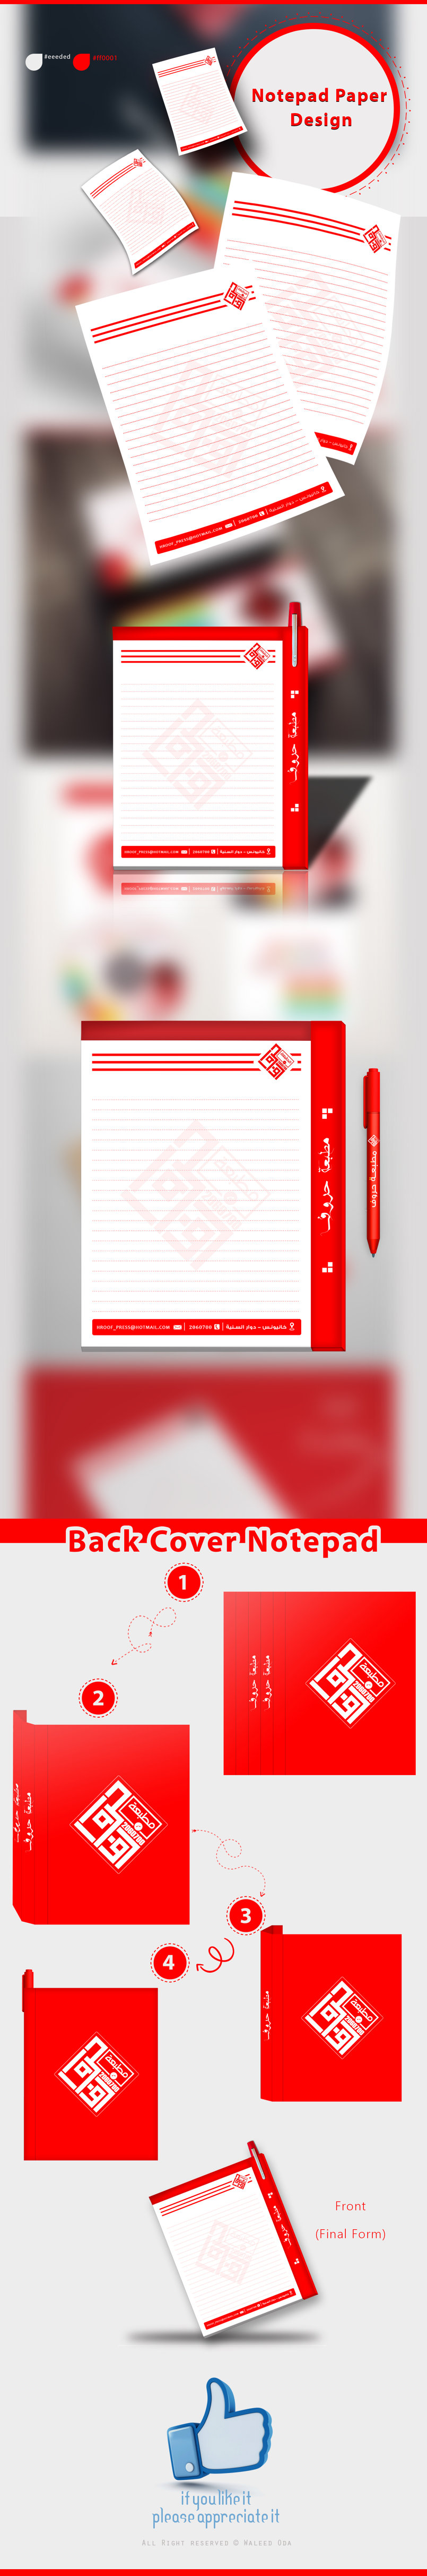 Notepad design for Horoof Press